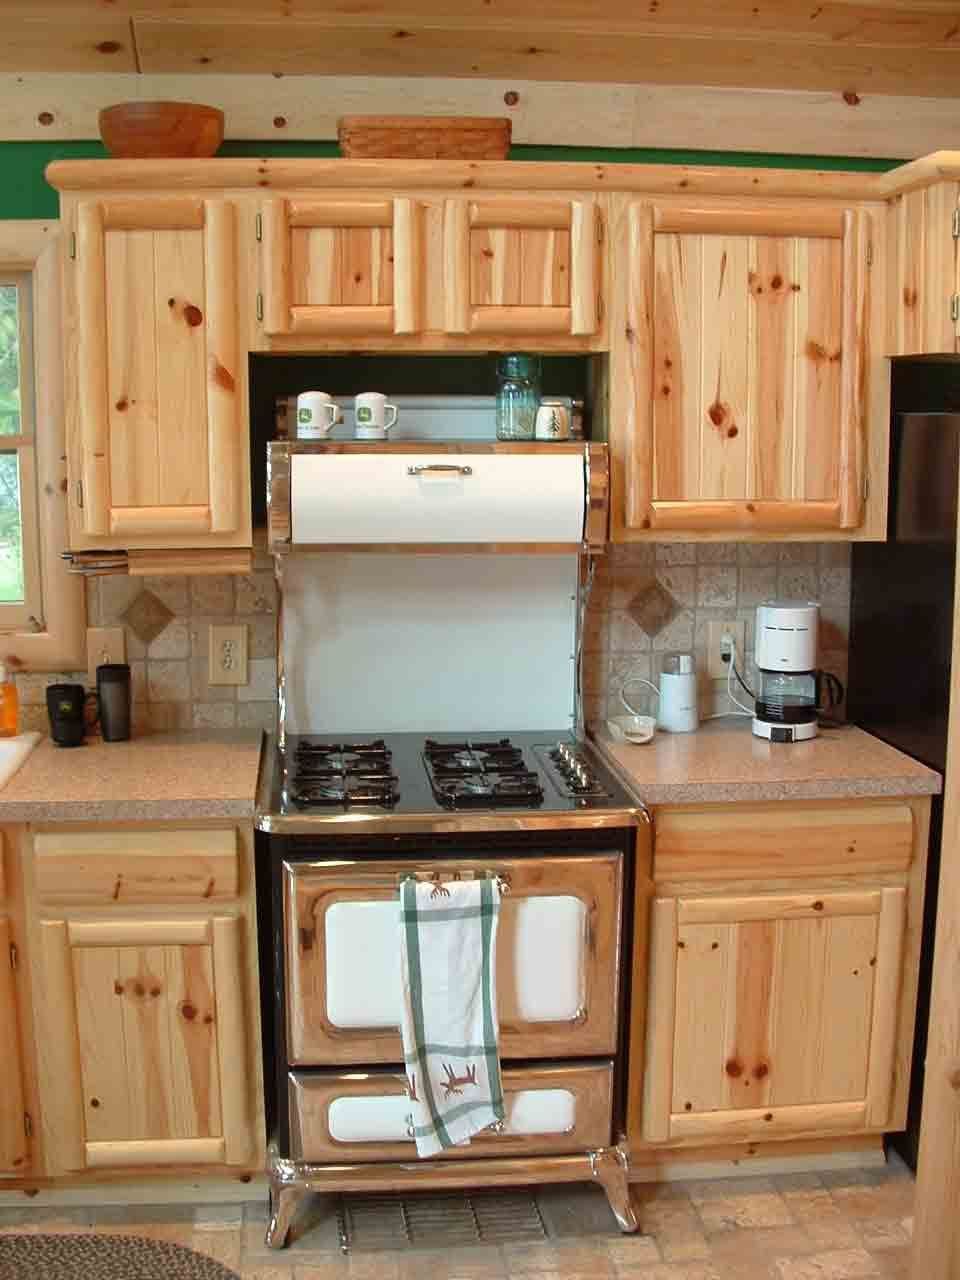 Yellow Pine Kitchen Cabinets 2021 In 2020 Pine Kitchen Cabinets Unfinished Kitchen Cabinets Wood Kitchen Cabinets